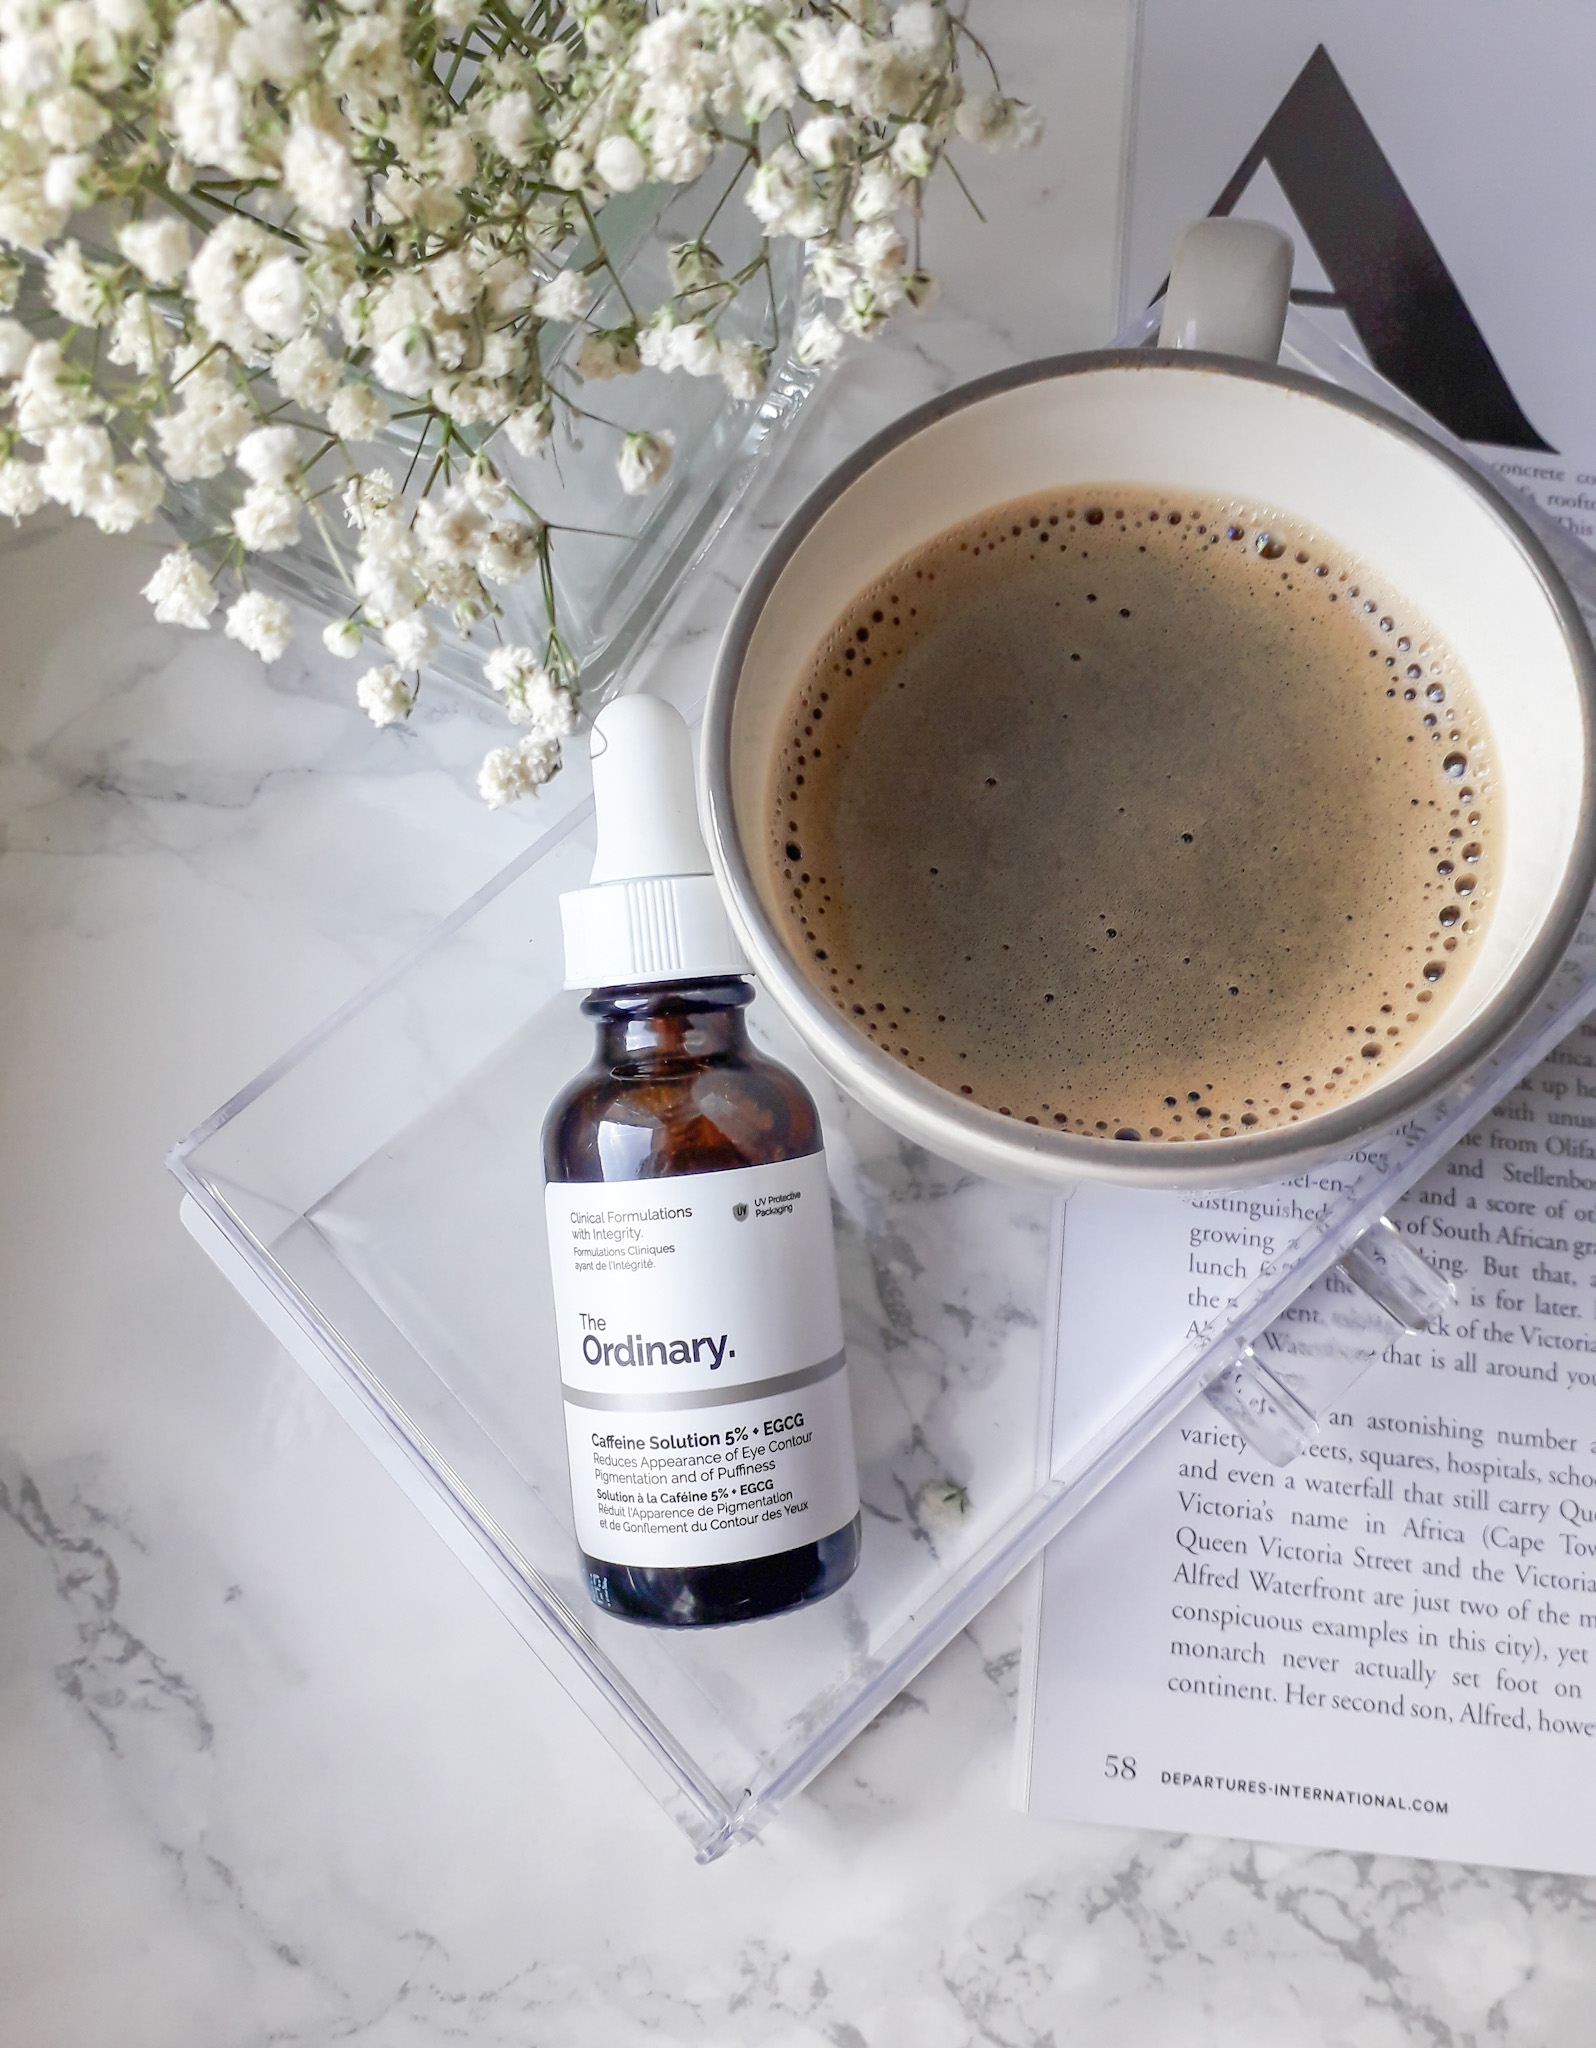 The Ordinary preporuke Caffeine Solution